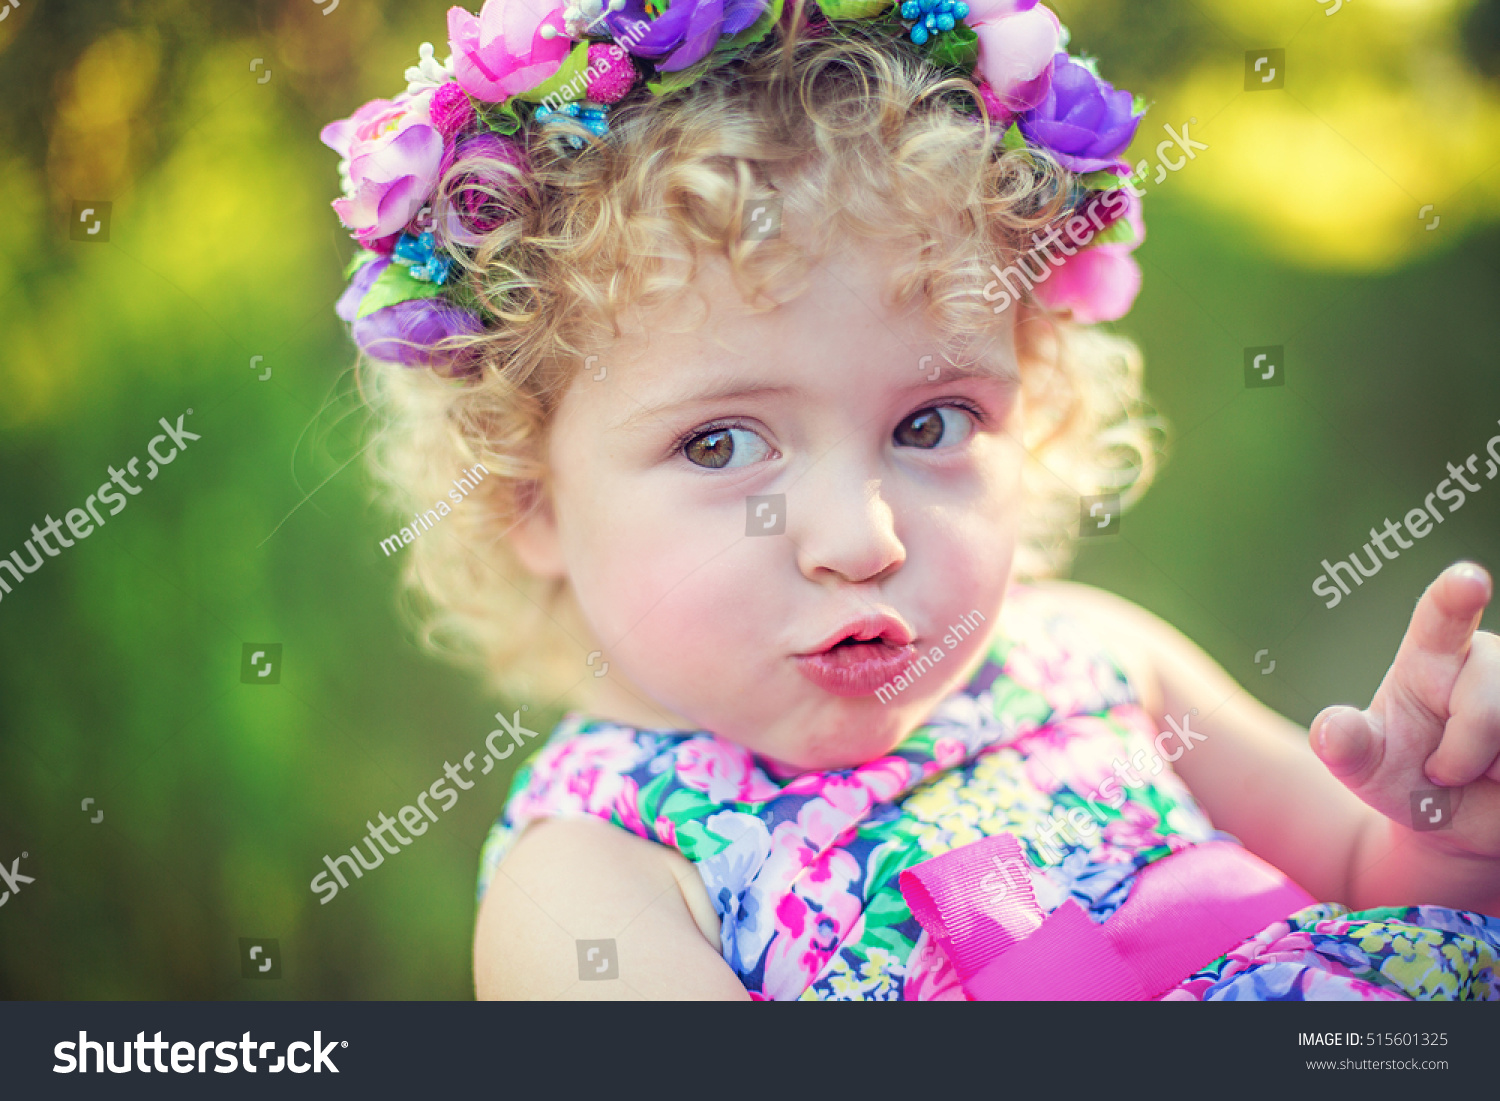 image sweet baby girl wreath flowers stock photo (royalty free